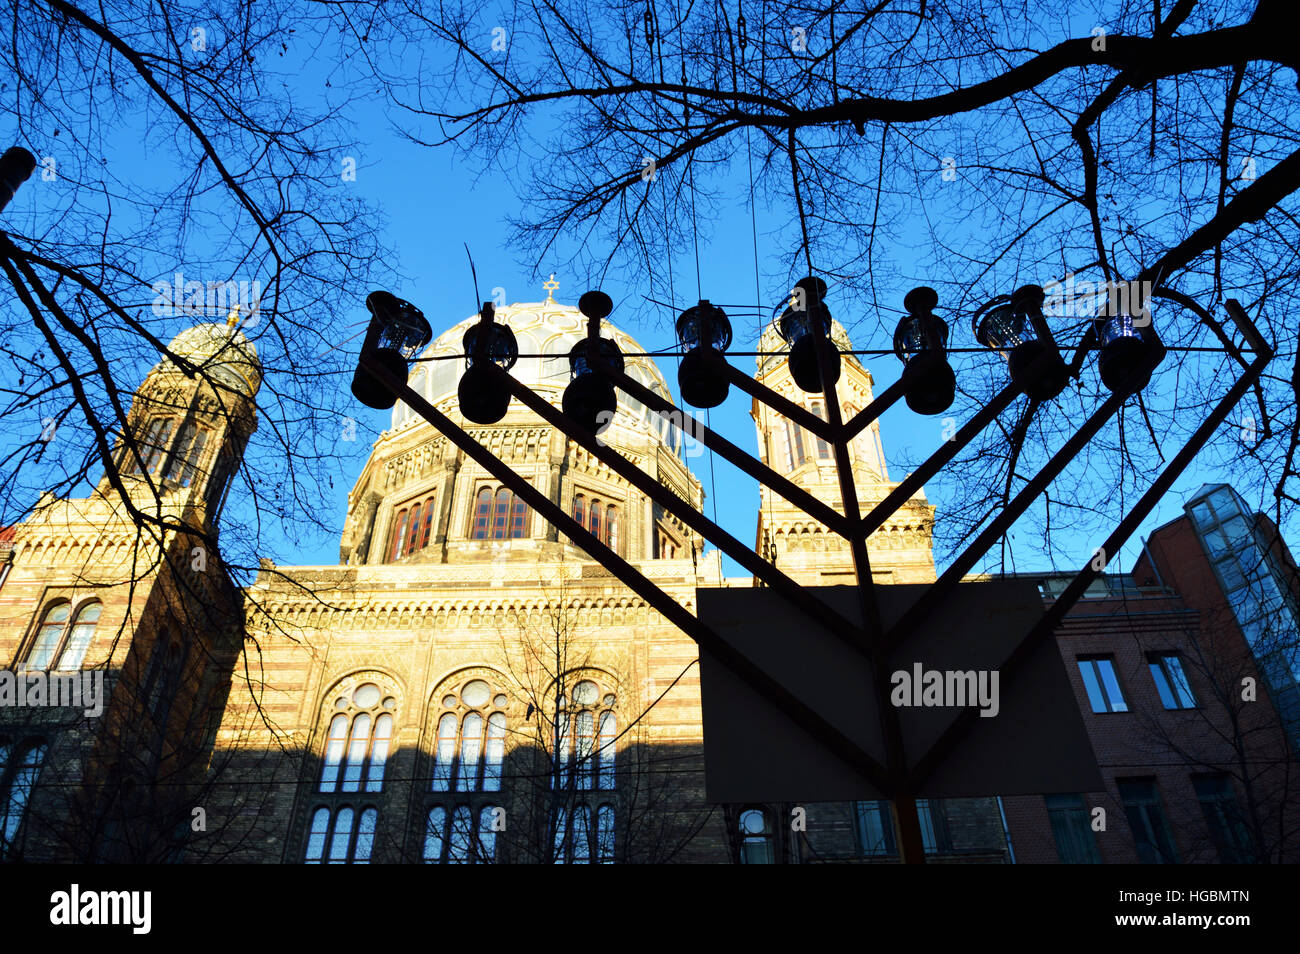 A hanukkah menorah in front of the New Synagogue (Neue Synagoge) in Berlin, Germany - Stock Image